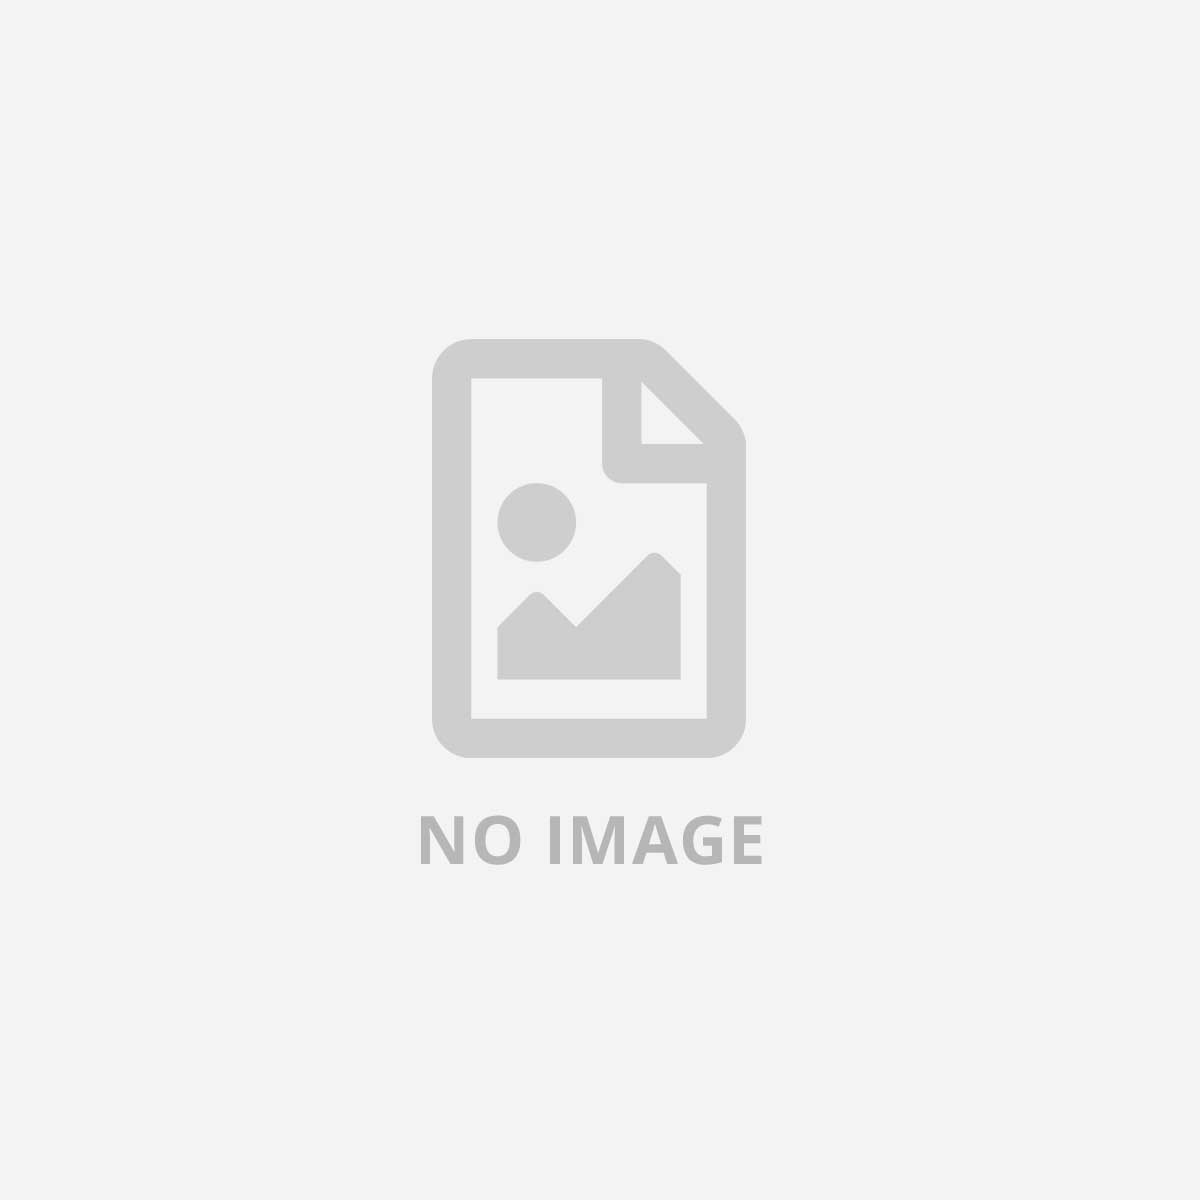 FASTERA VEEAM CLOUD O365